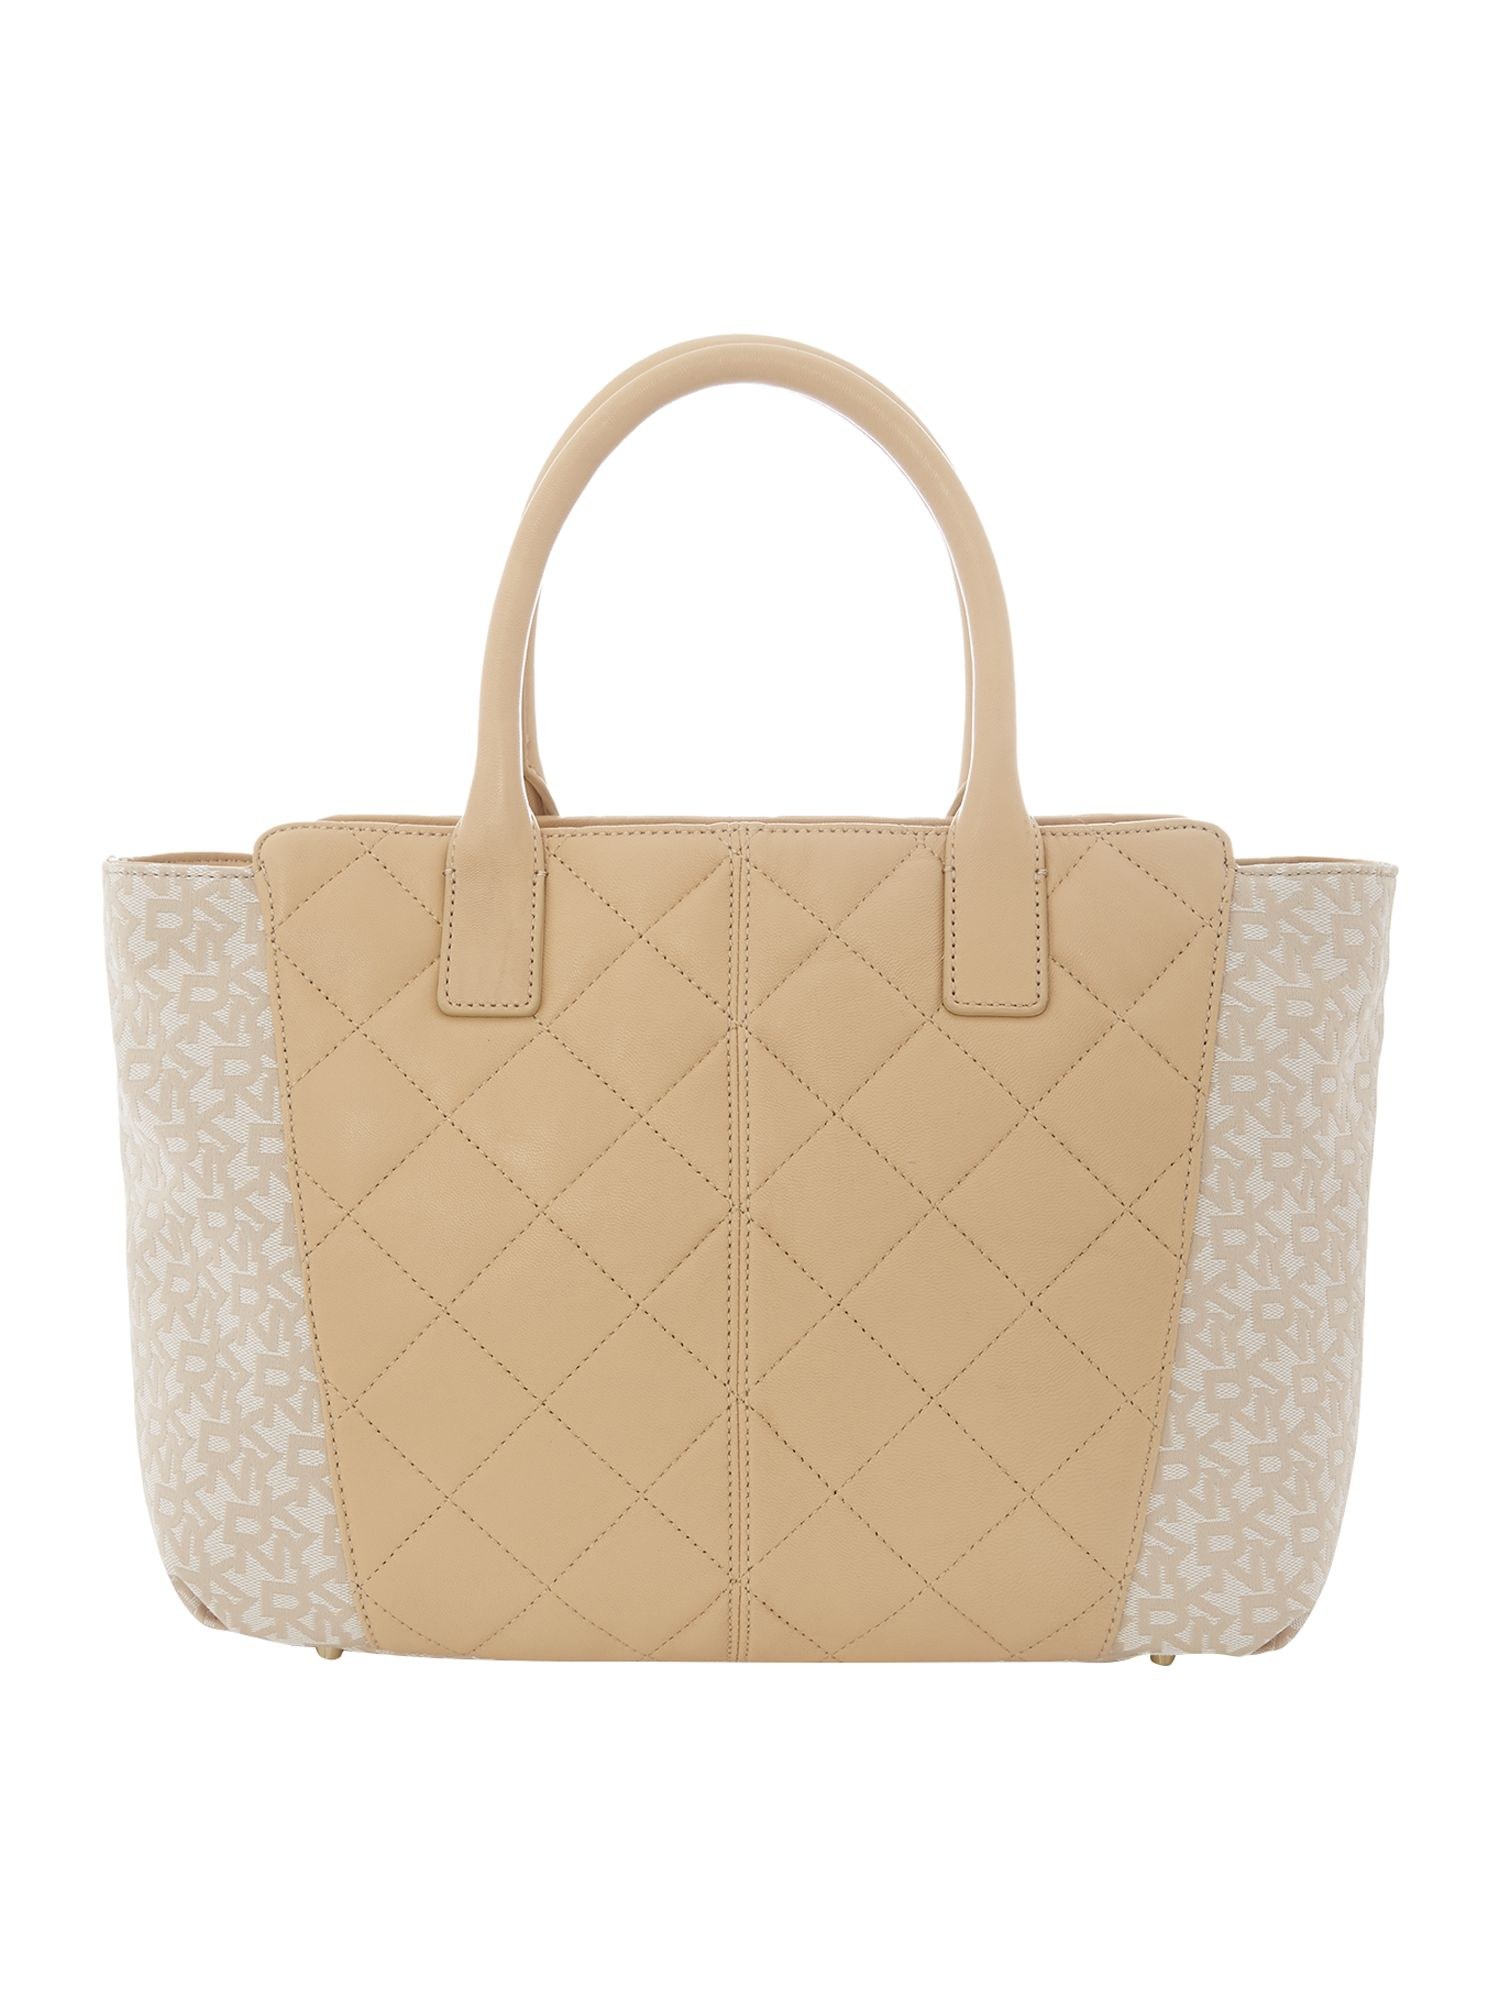 Quilted Nappa neutral tote bag